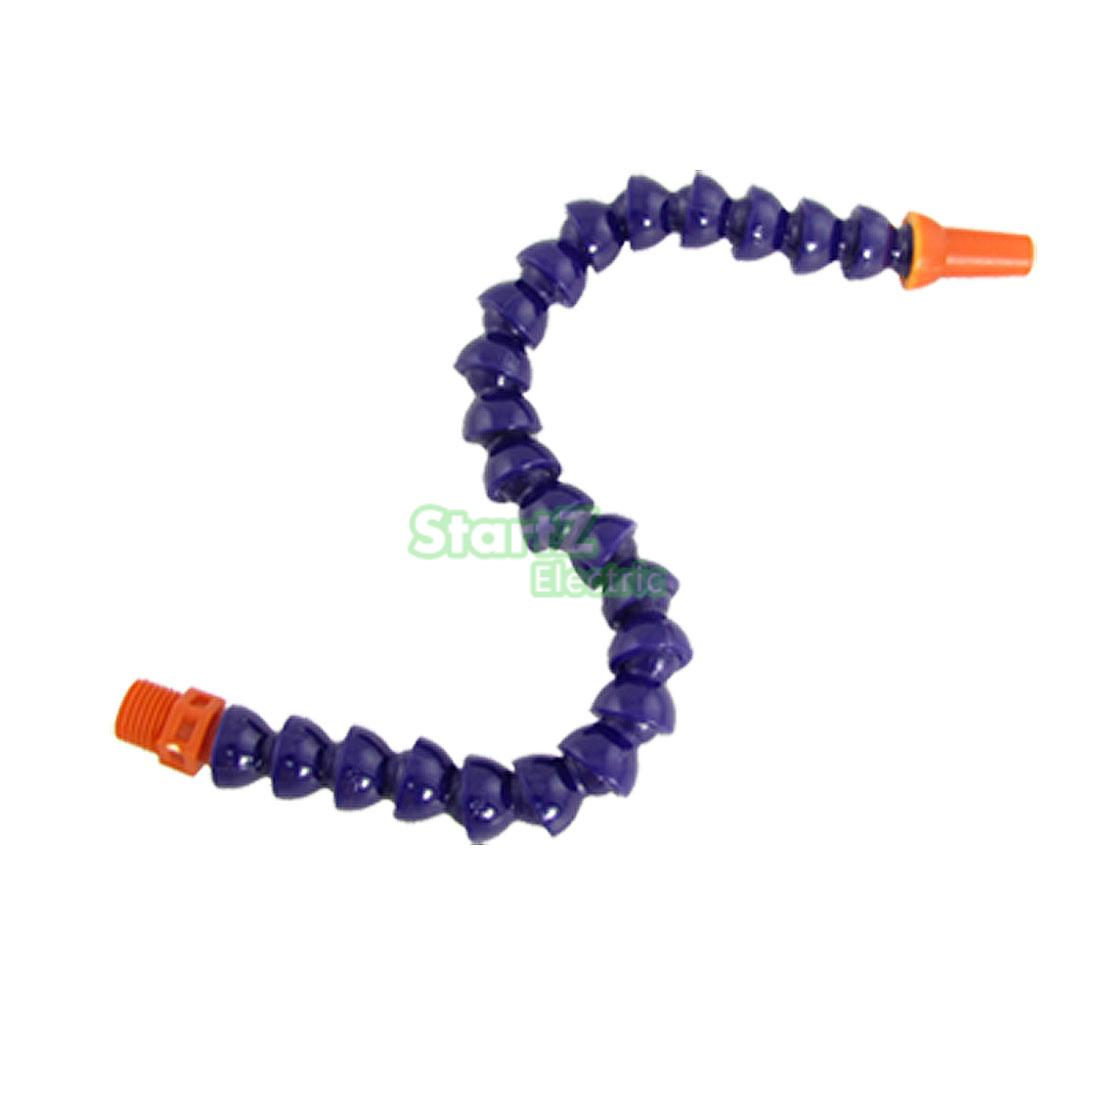 1/4 Round Nozzle Coolant Oil Hose Purple for Lathe Milling 5mm round nozzle 5mm round speed nozzle 7mm triangle speed nozzle tacking nozzle